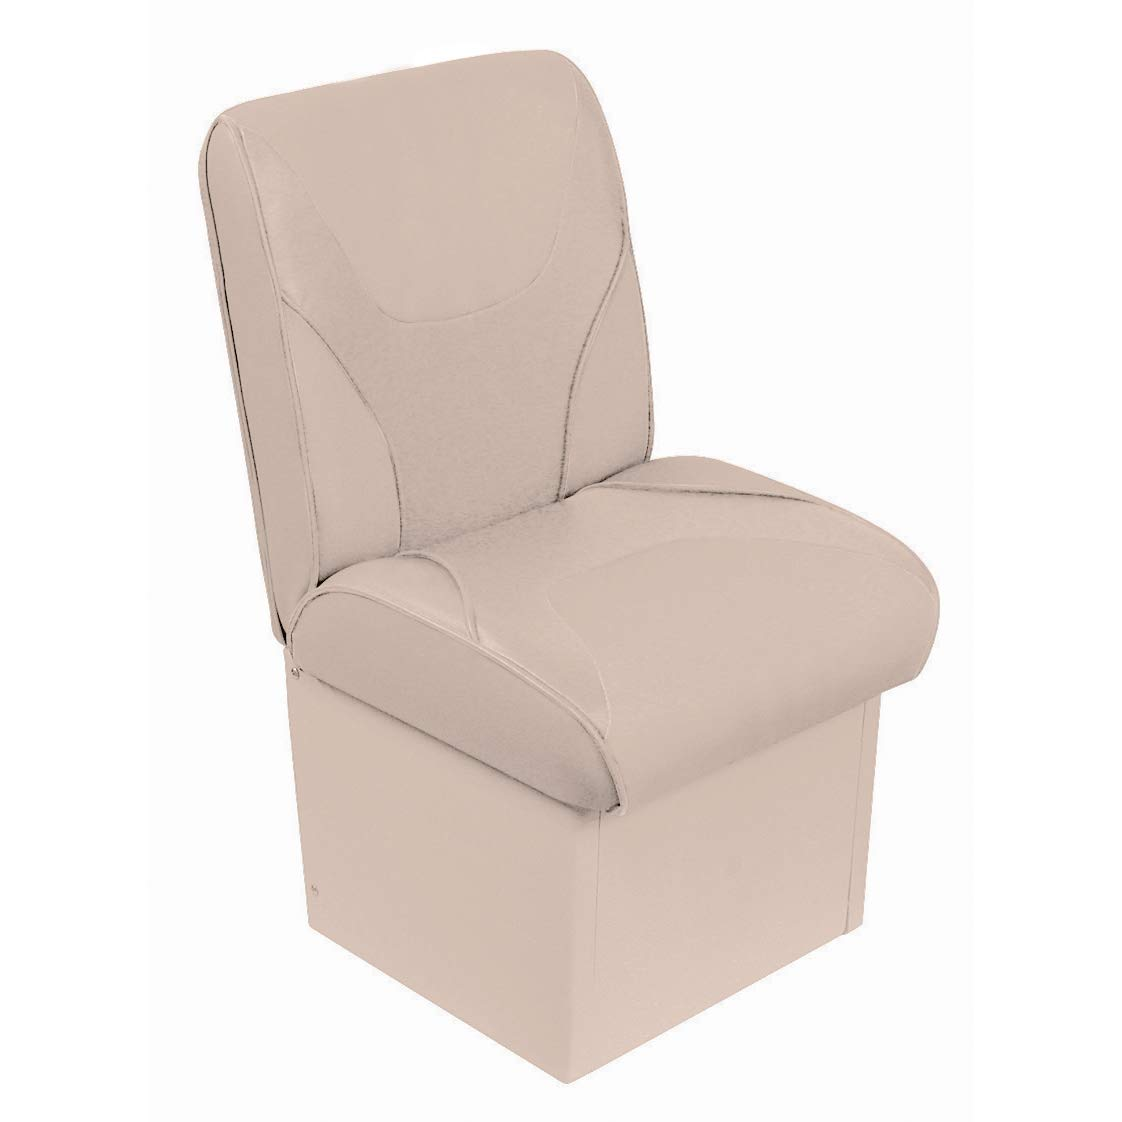 Overton's Deluxe Jump Seat with 10'' Base Sand by Overton's